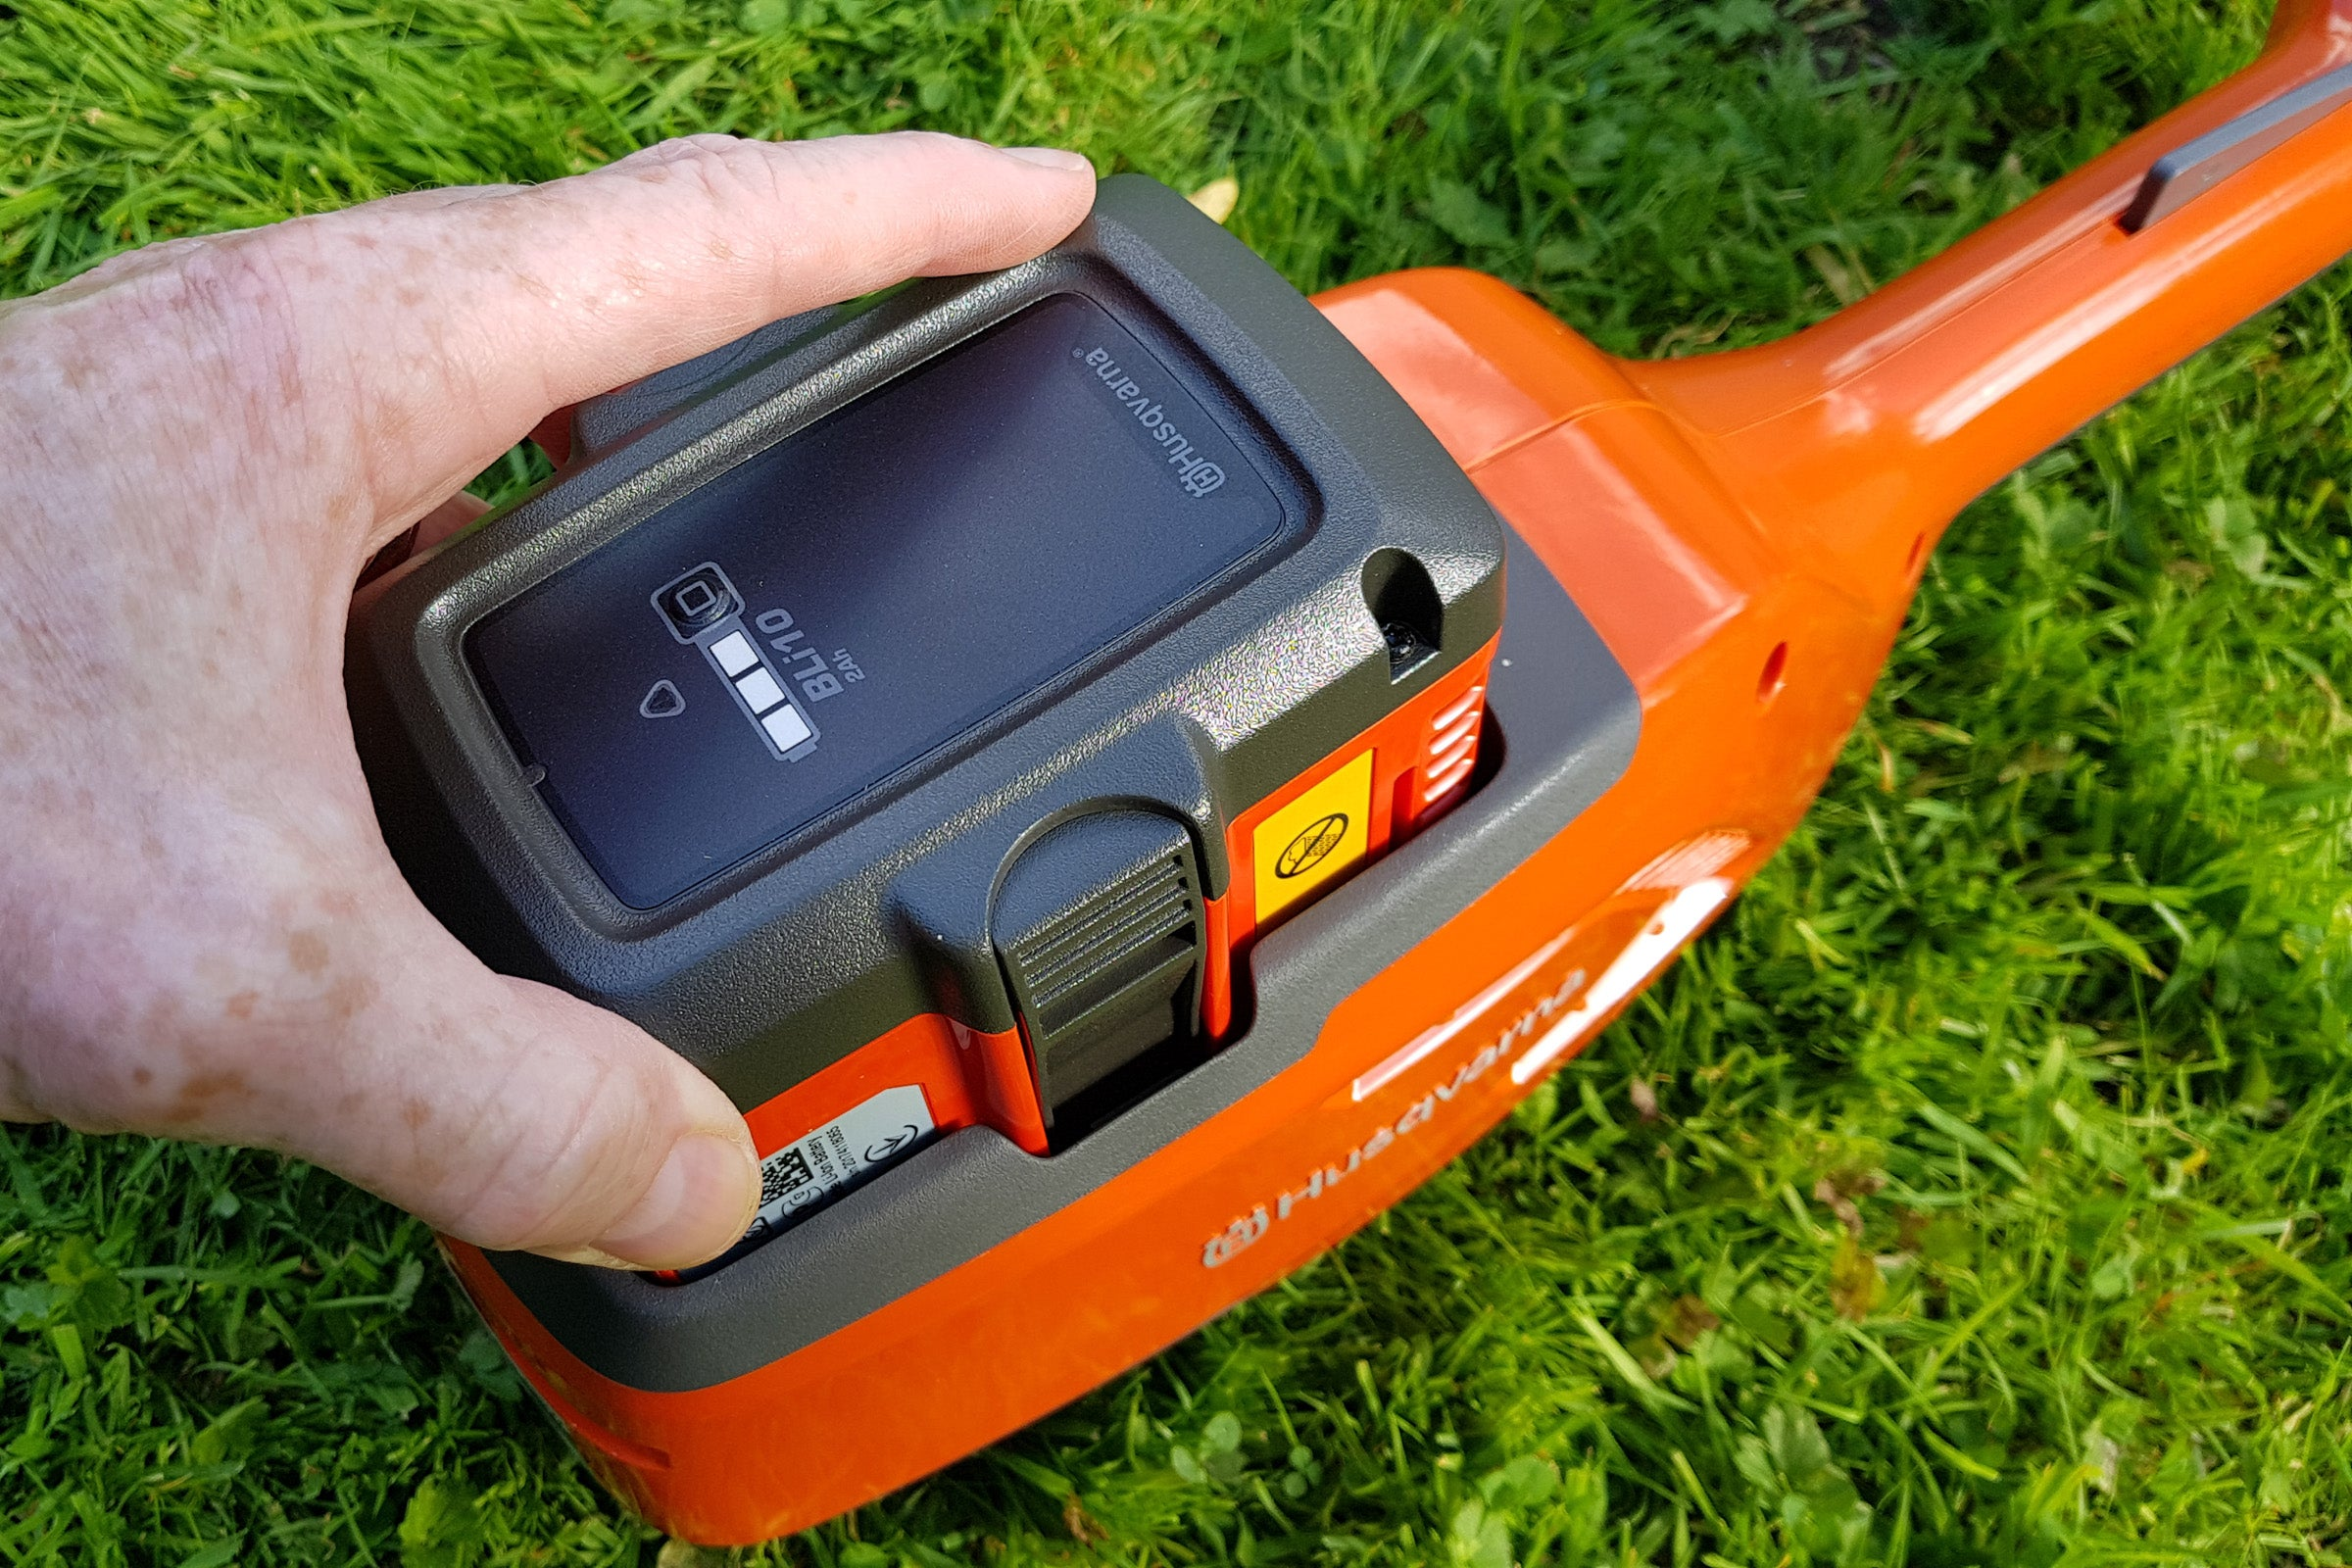 Husqvarna 115iL Cordless Grass Trimmer Review | Trusted Reviews